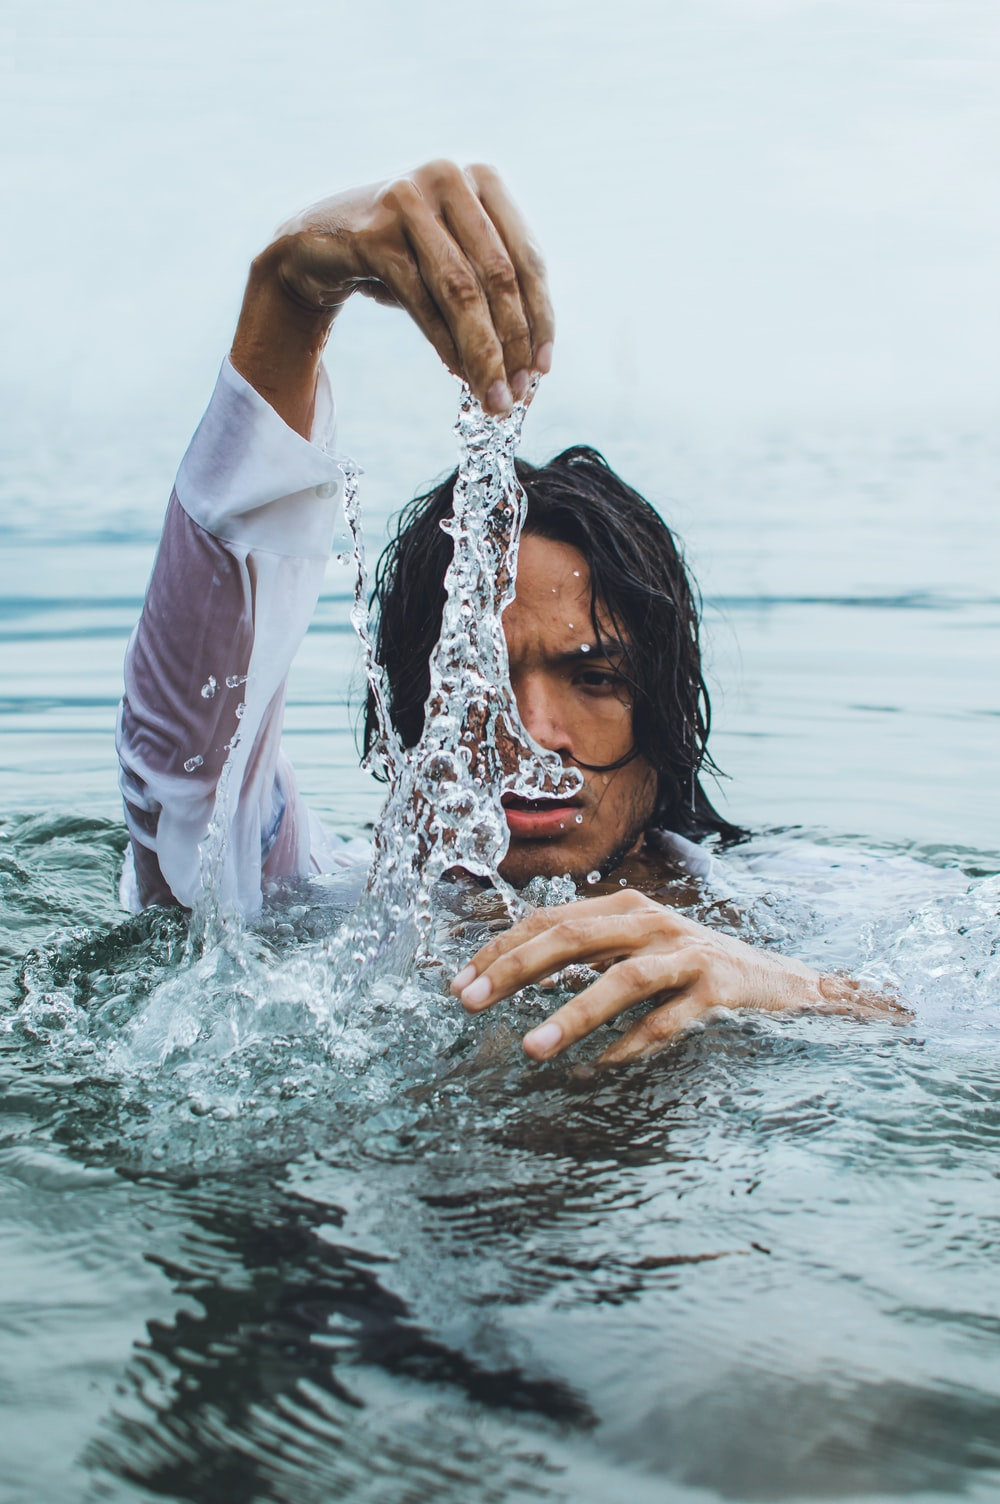 woman in white long sleeve shirt in water